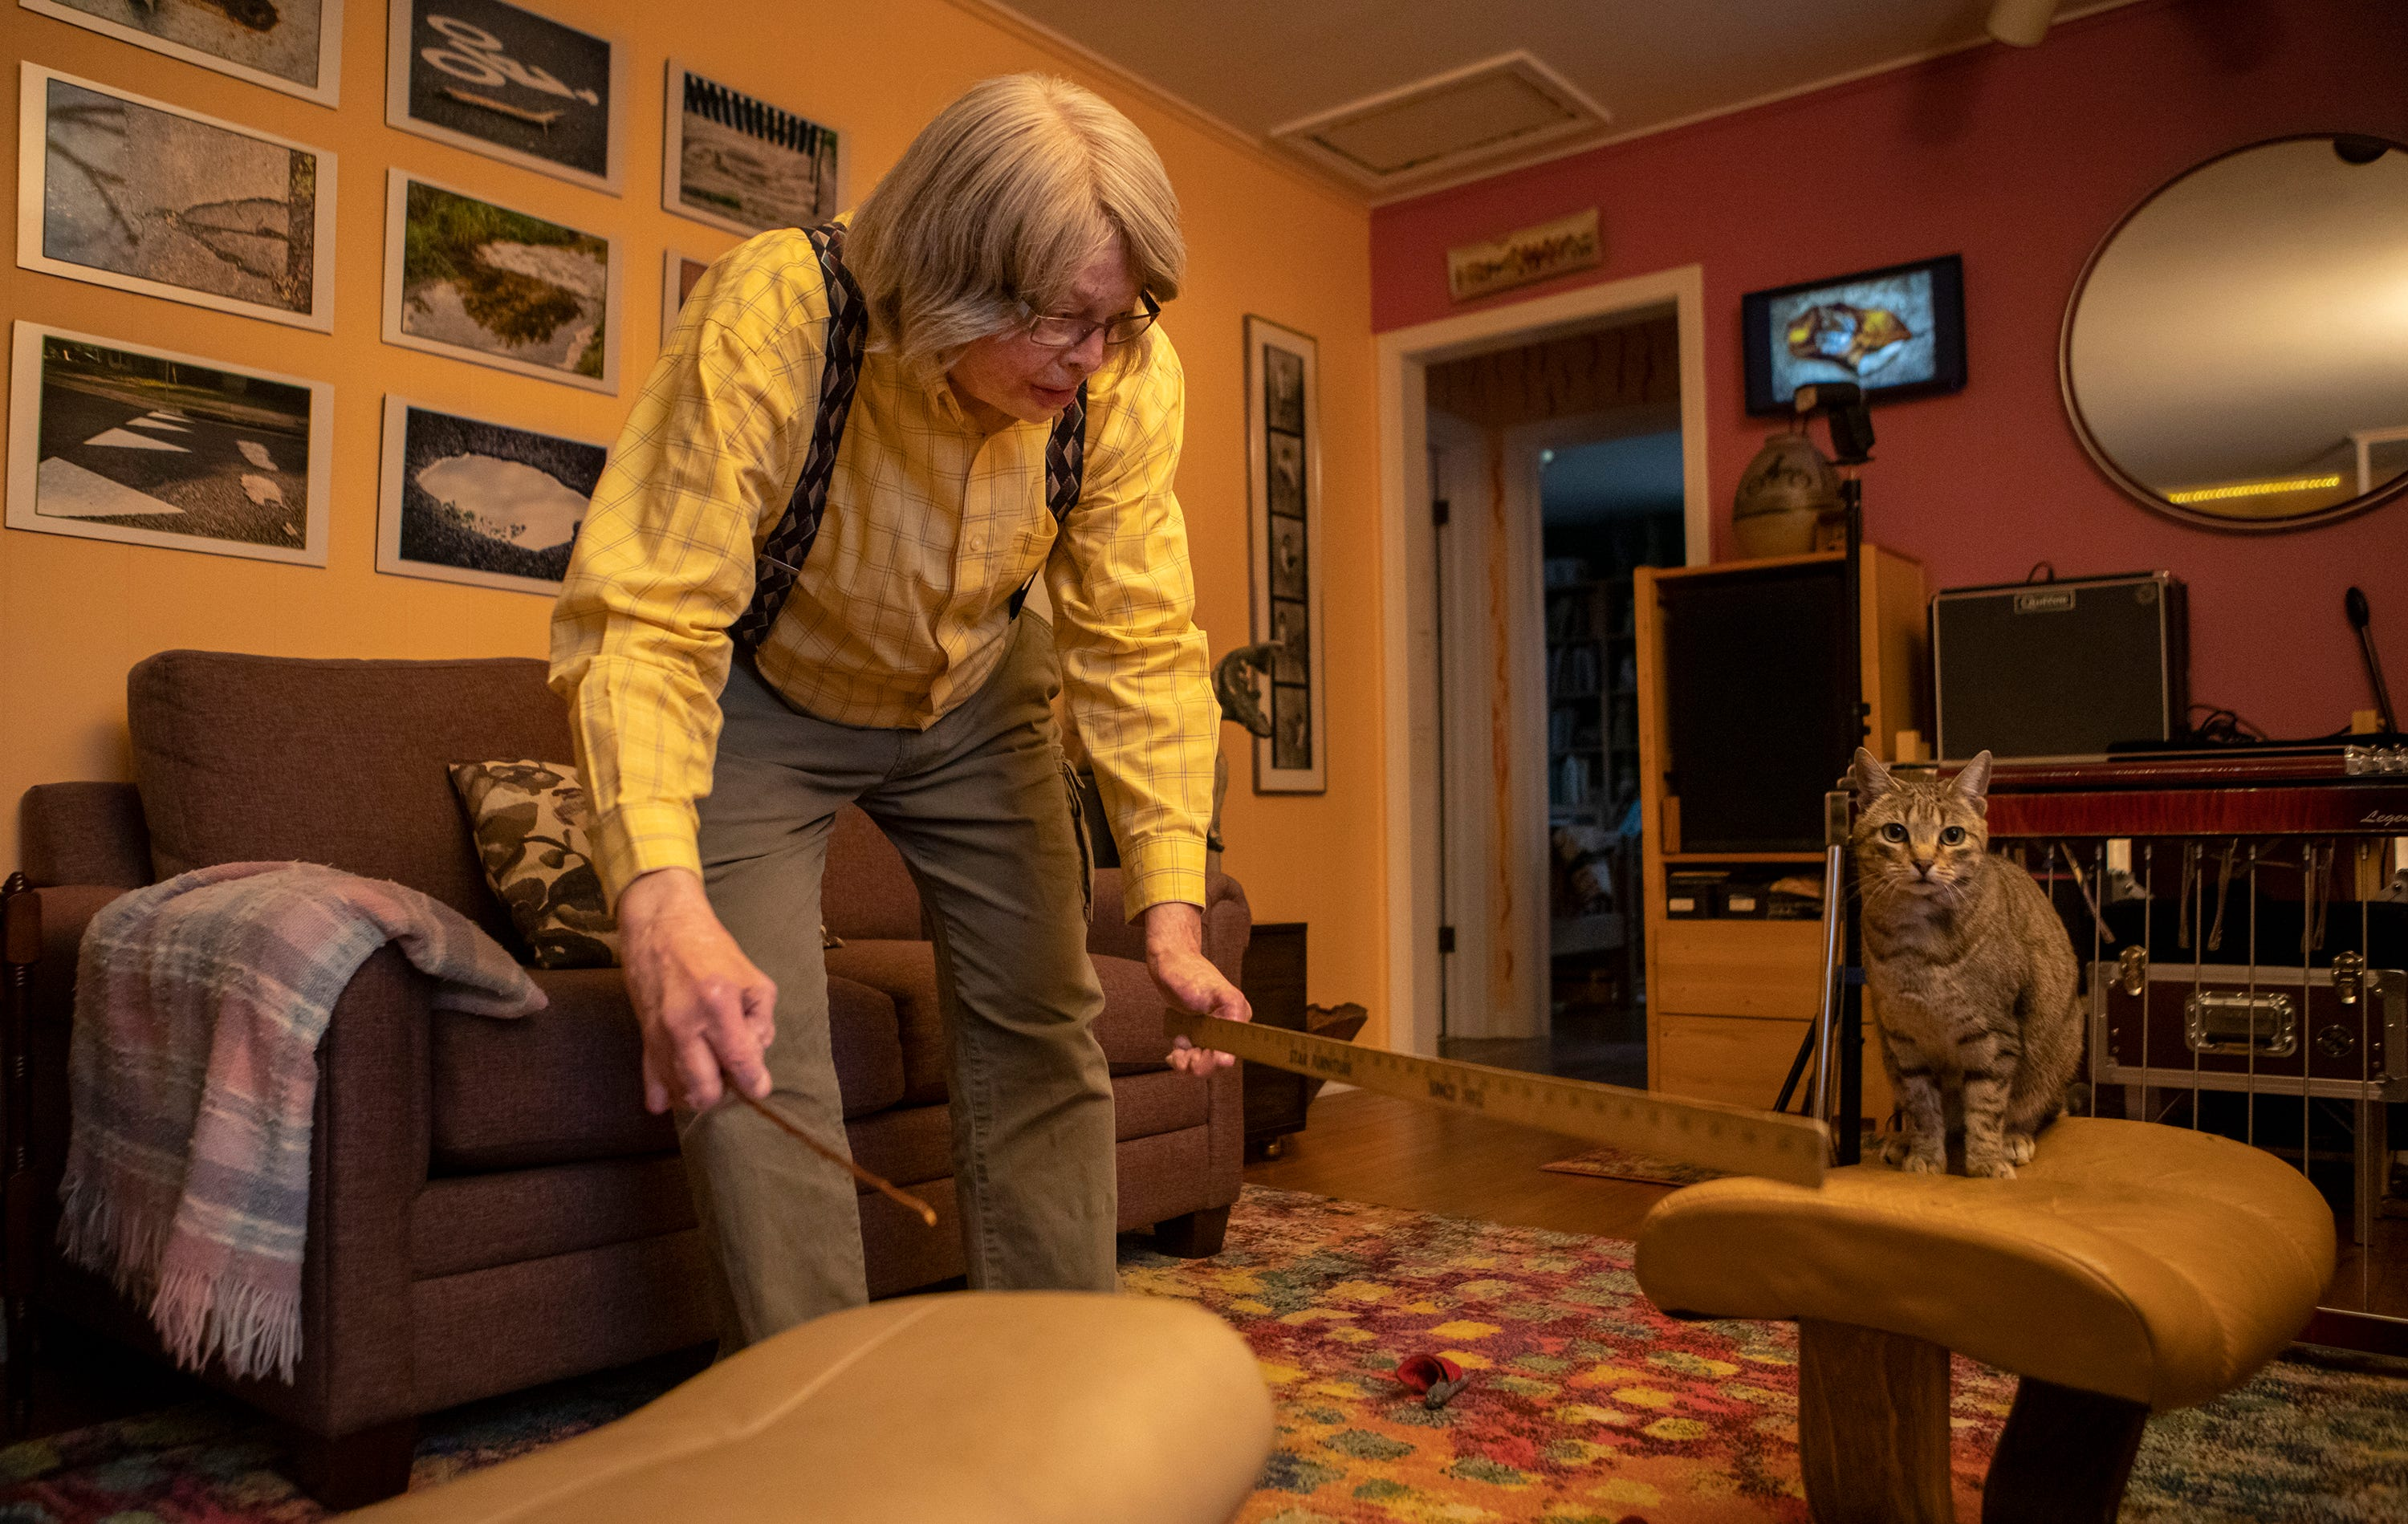 """Al Evans, 75, demonstrates how his cat can jump over a ruler on Feb. 11, 2021.  The photographs hanging on the wall are from walks he and his wife take every morning. The photographs he takes are to """"show the beauty that lies all around us."""""""